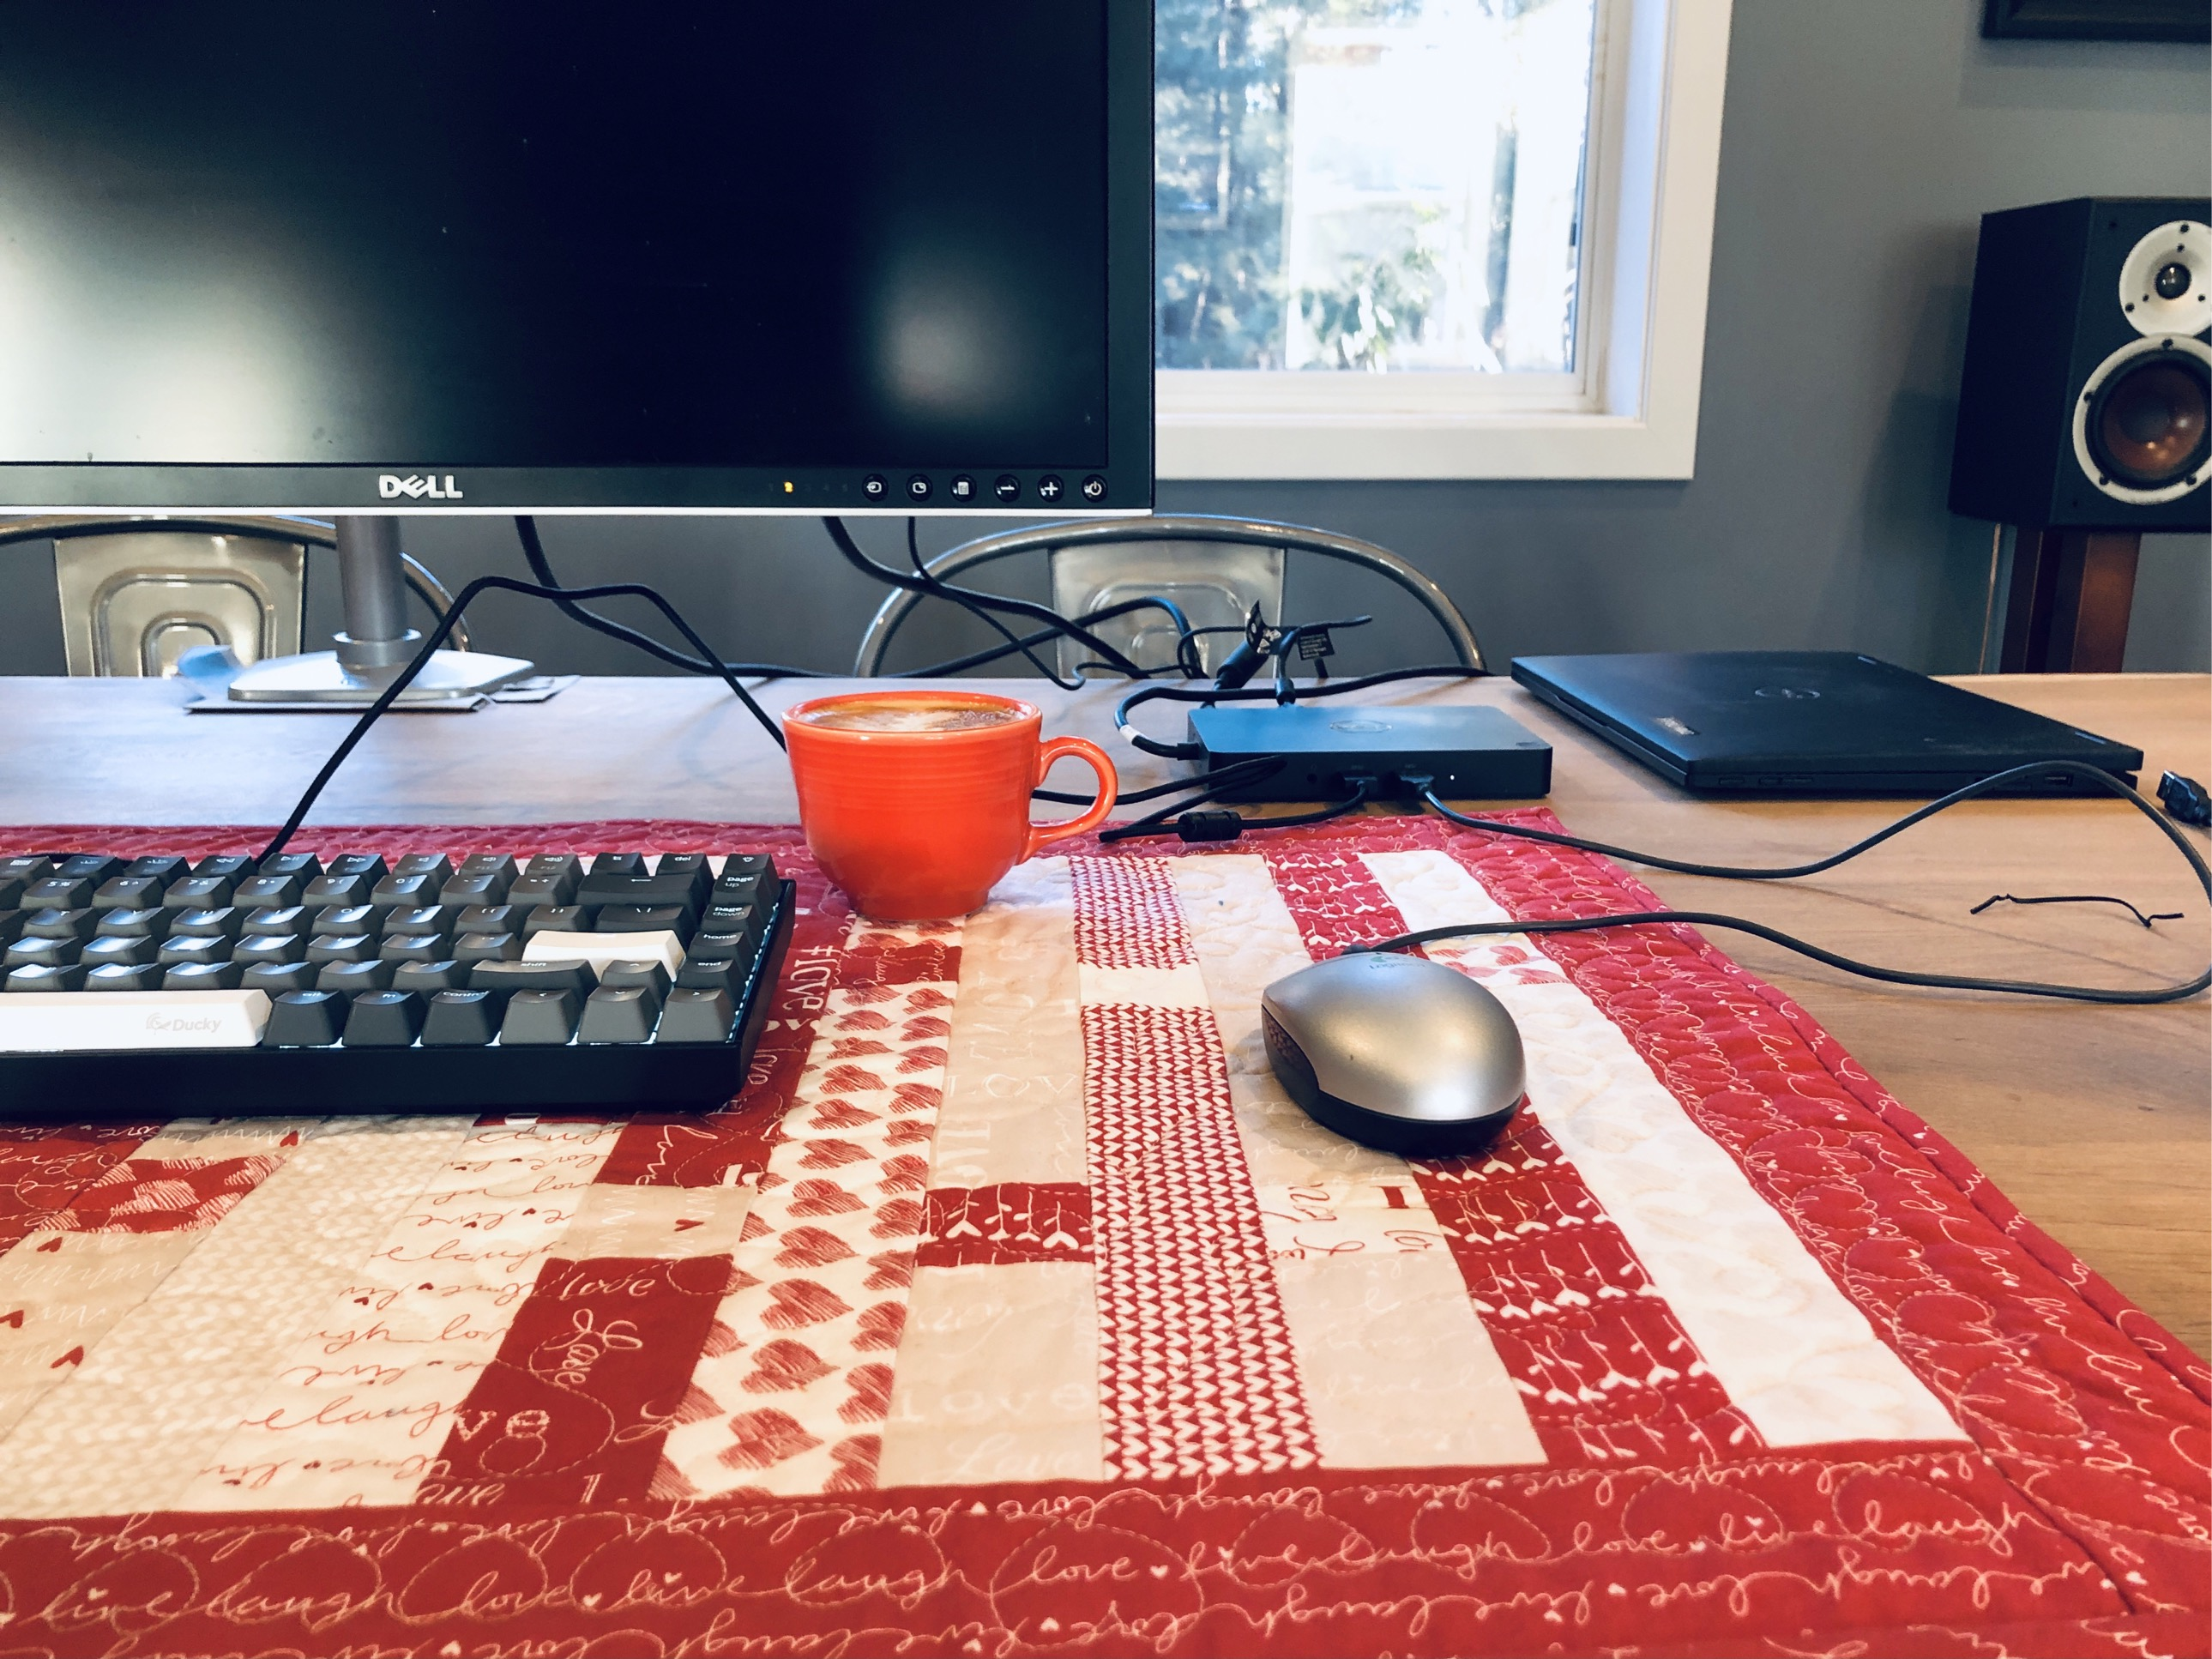 A desk with monitor mounted on it, coffee cup and keyboard